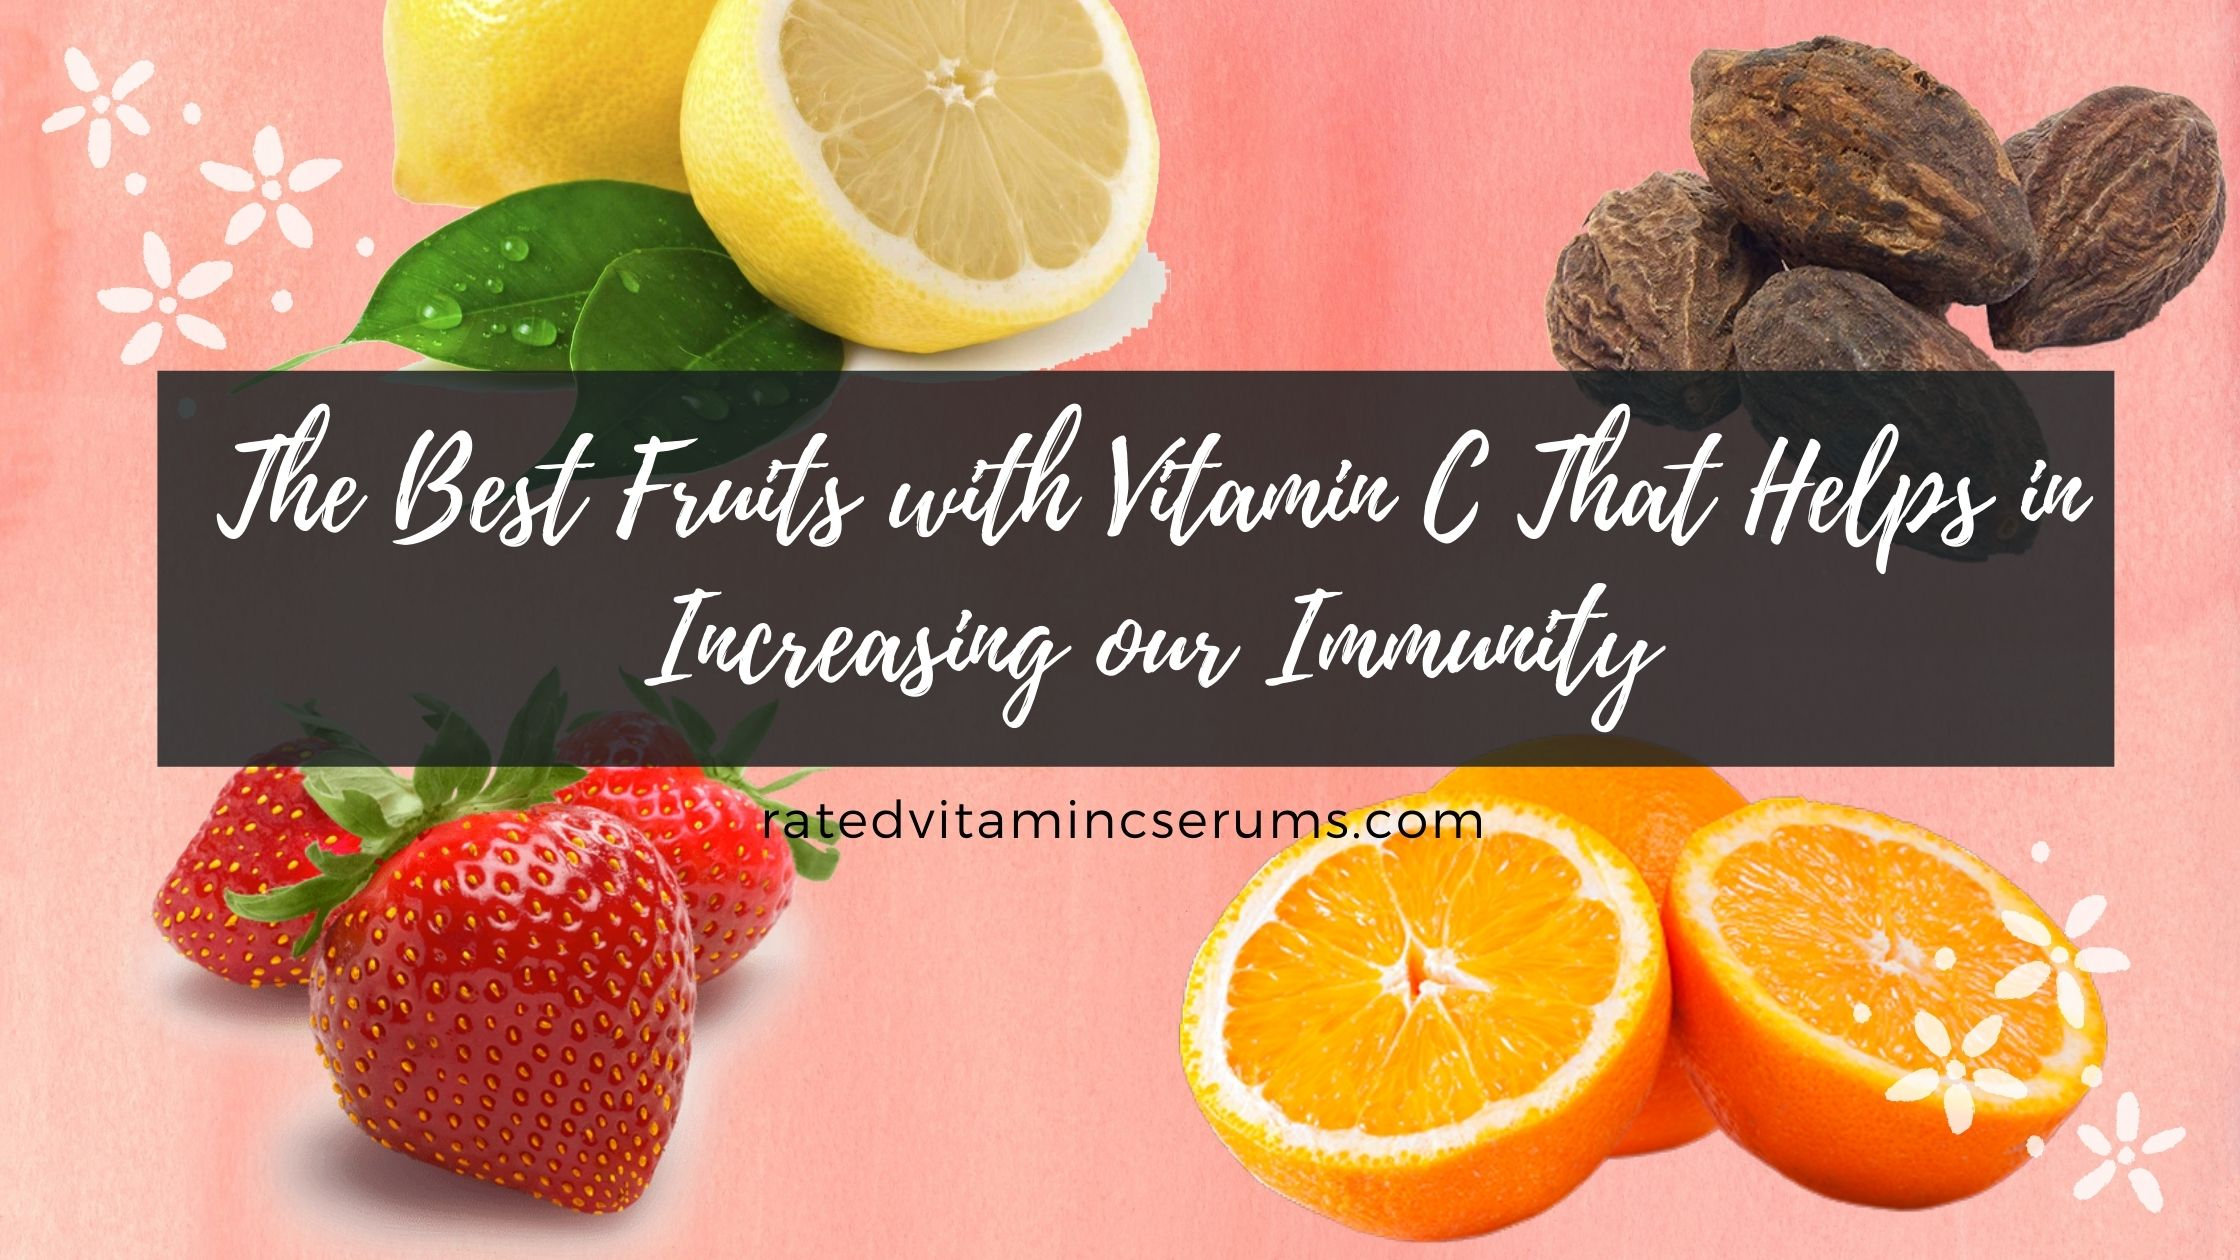 The Best Fruits with Vitamin C That Helps in Increasing our Immunity